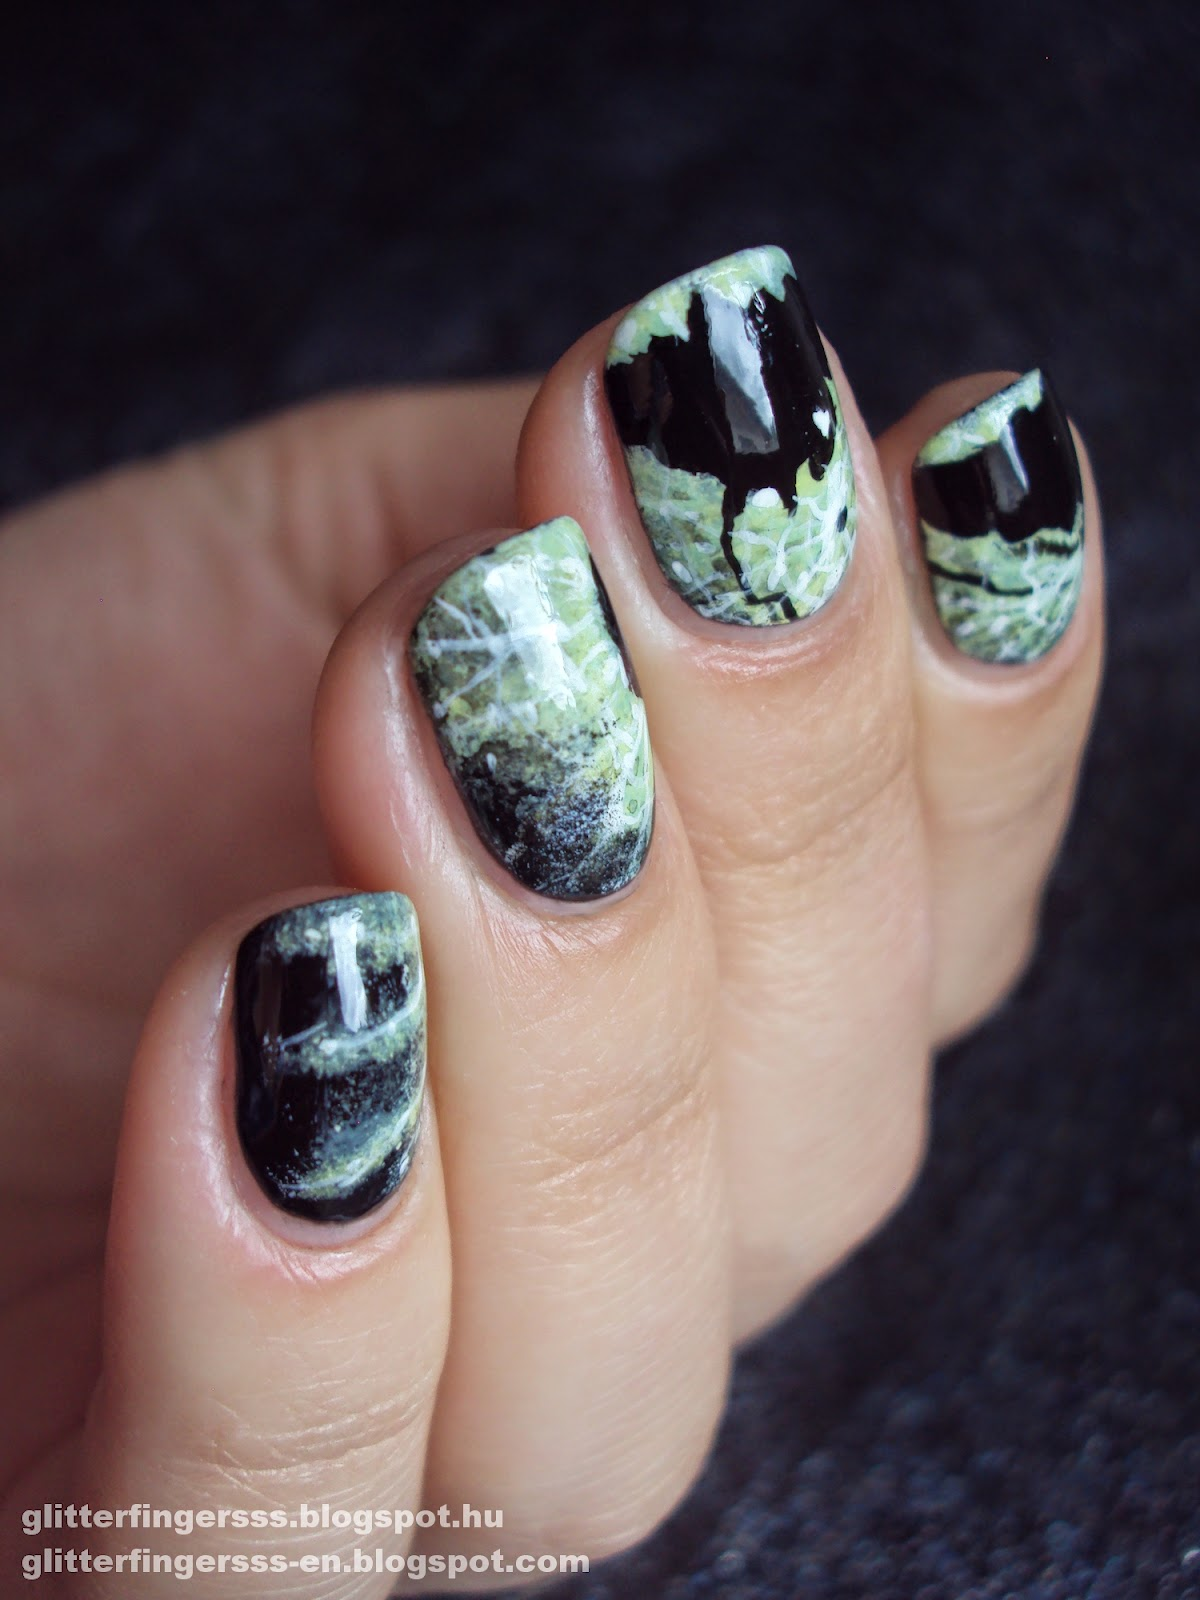 Nail art tokyo tutorial glitterfingersss in english start off with a black base 1 than sponge some white2 and green 3 nail polish i added some dirty mint to it too i used a really thin nail art prinsesfo Image collections